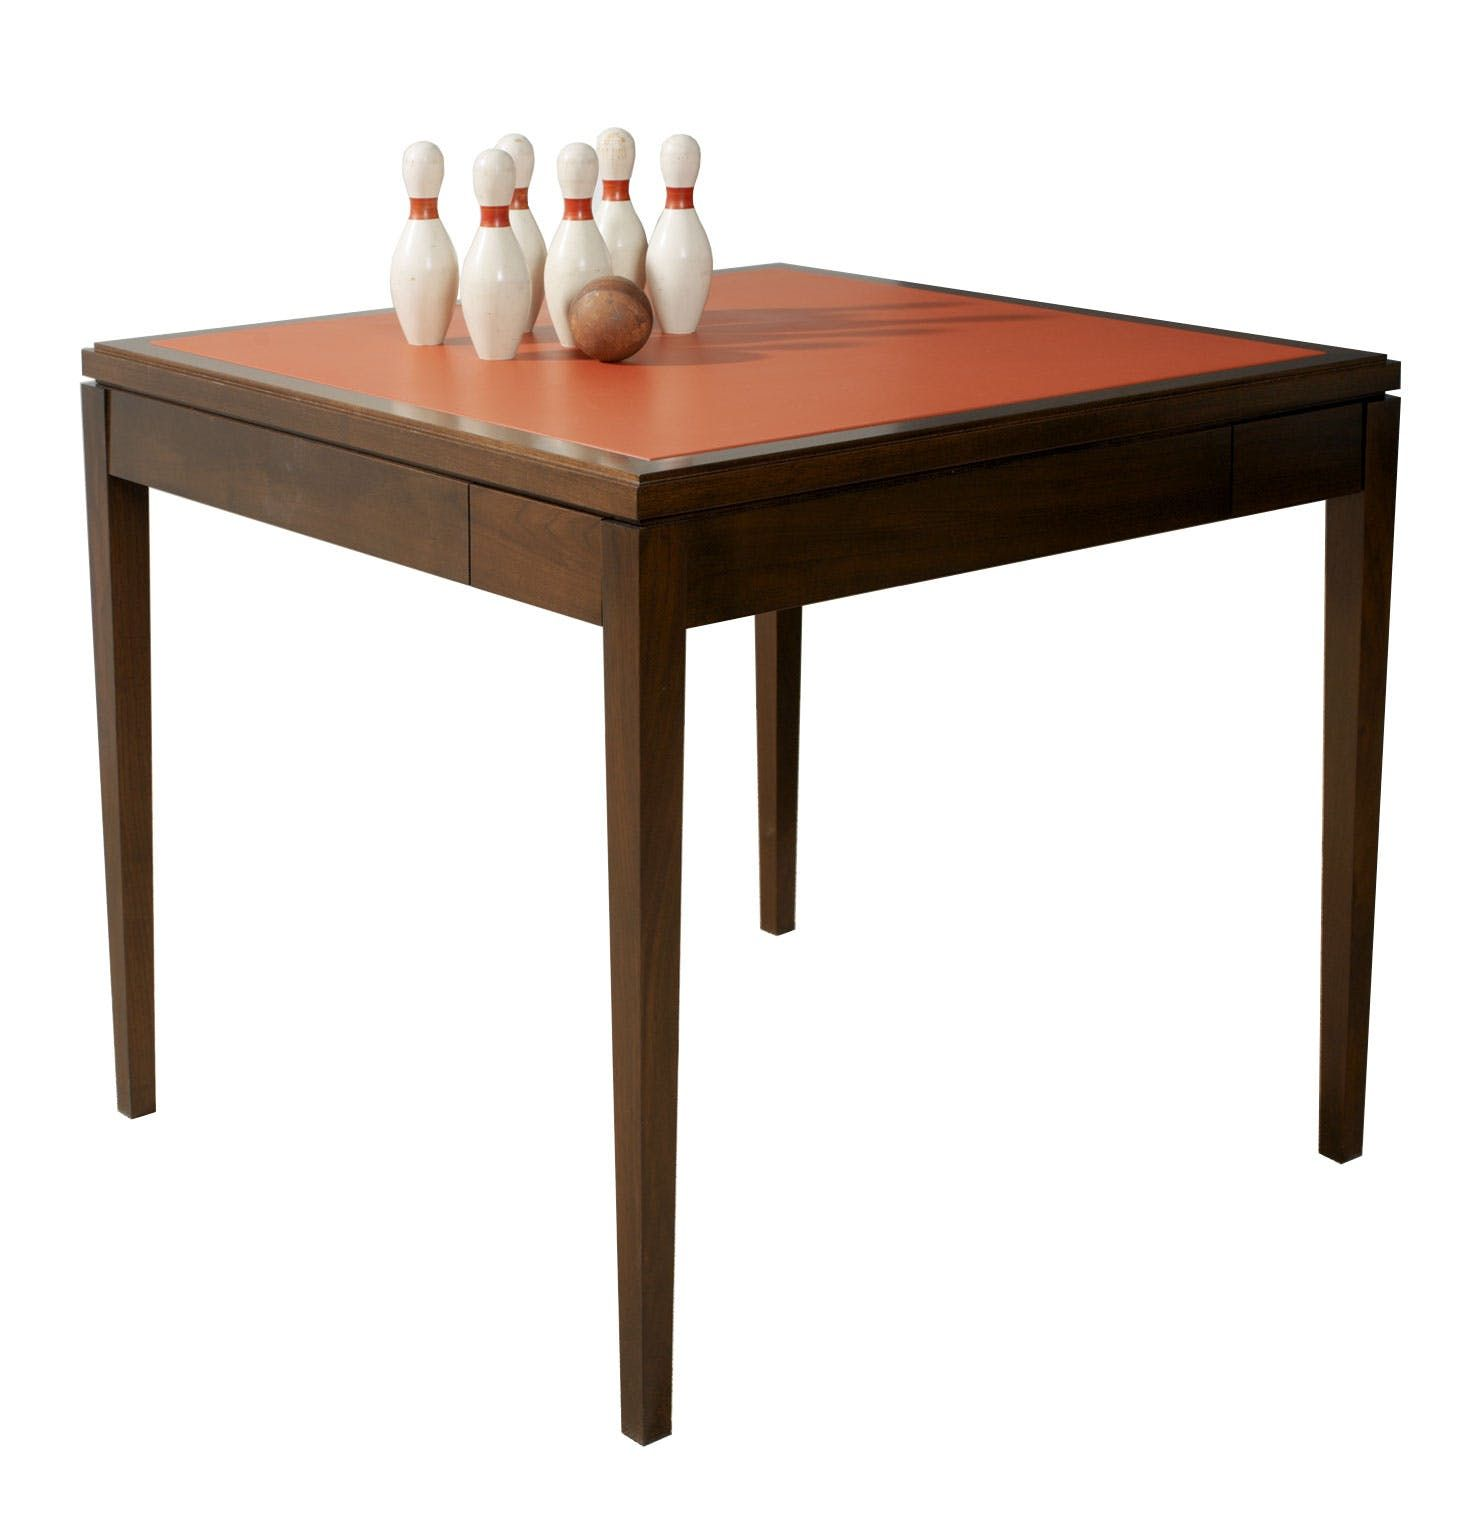 Games Table Contemporary, Traditional, Transitional, MidCentury